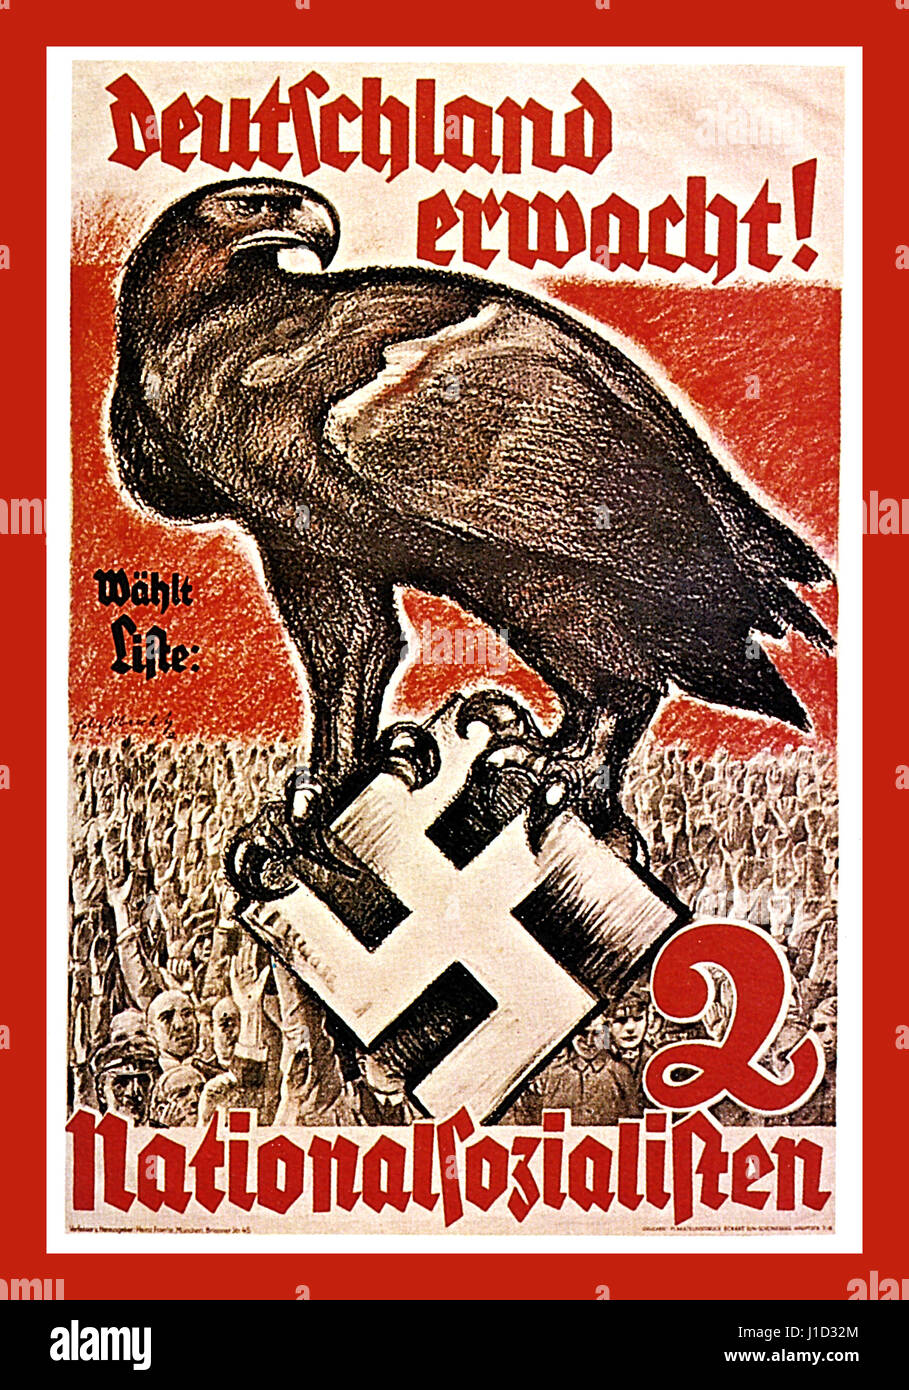 1930's pre-war German Nazi propaganda poster for The National Socialist Party saying  'GERMANY AWAKE' - Stock Image